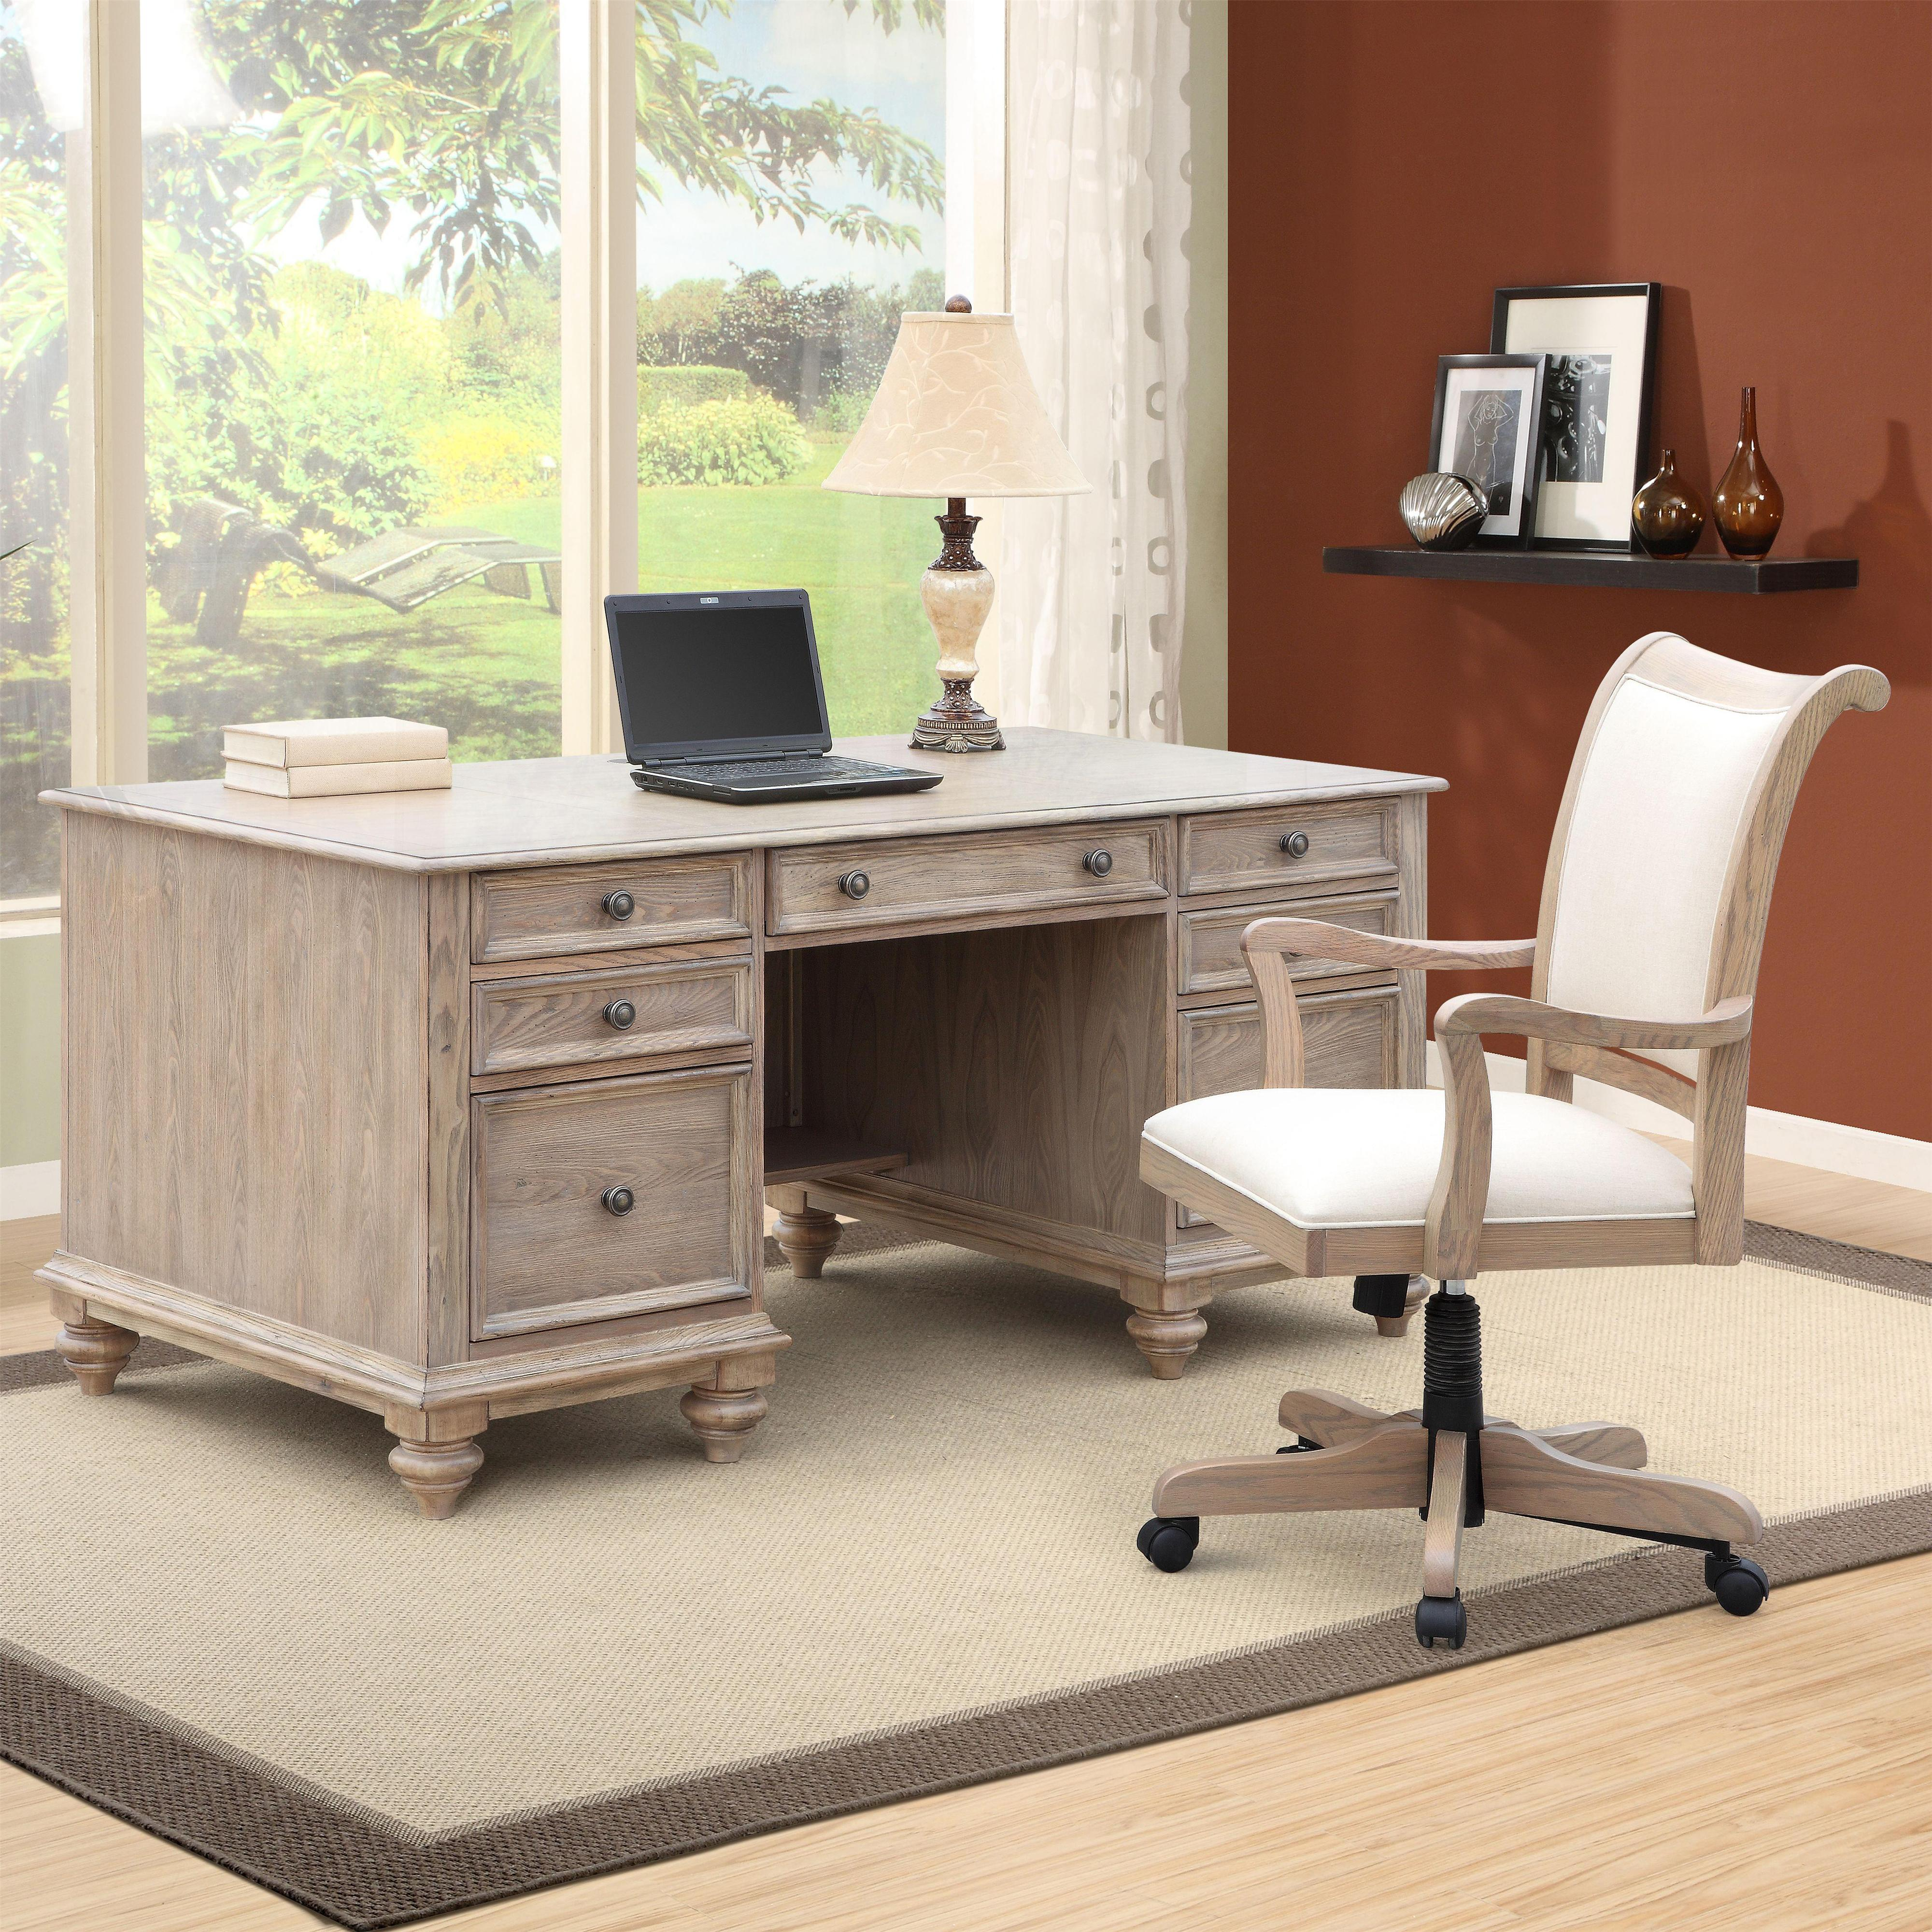 Riverside Furniture Coventry Executive Desk With 7 Drawers Colder 39 S Furniture And Appliance